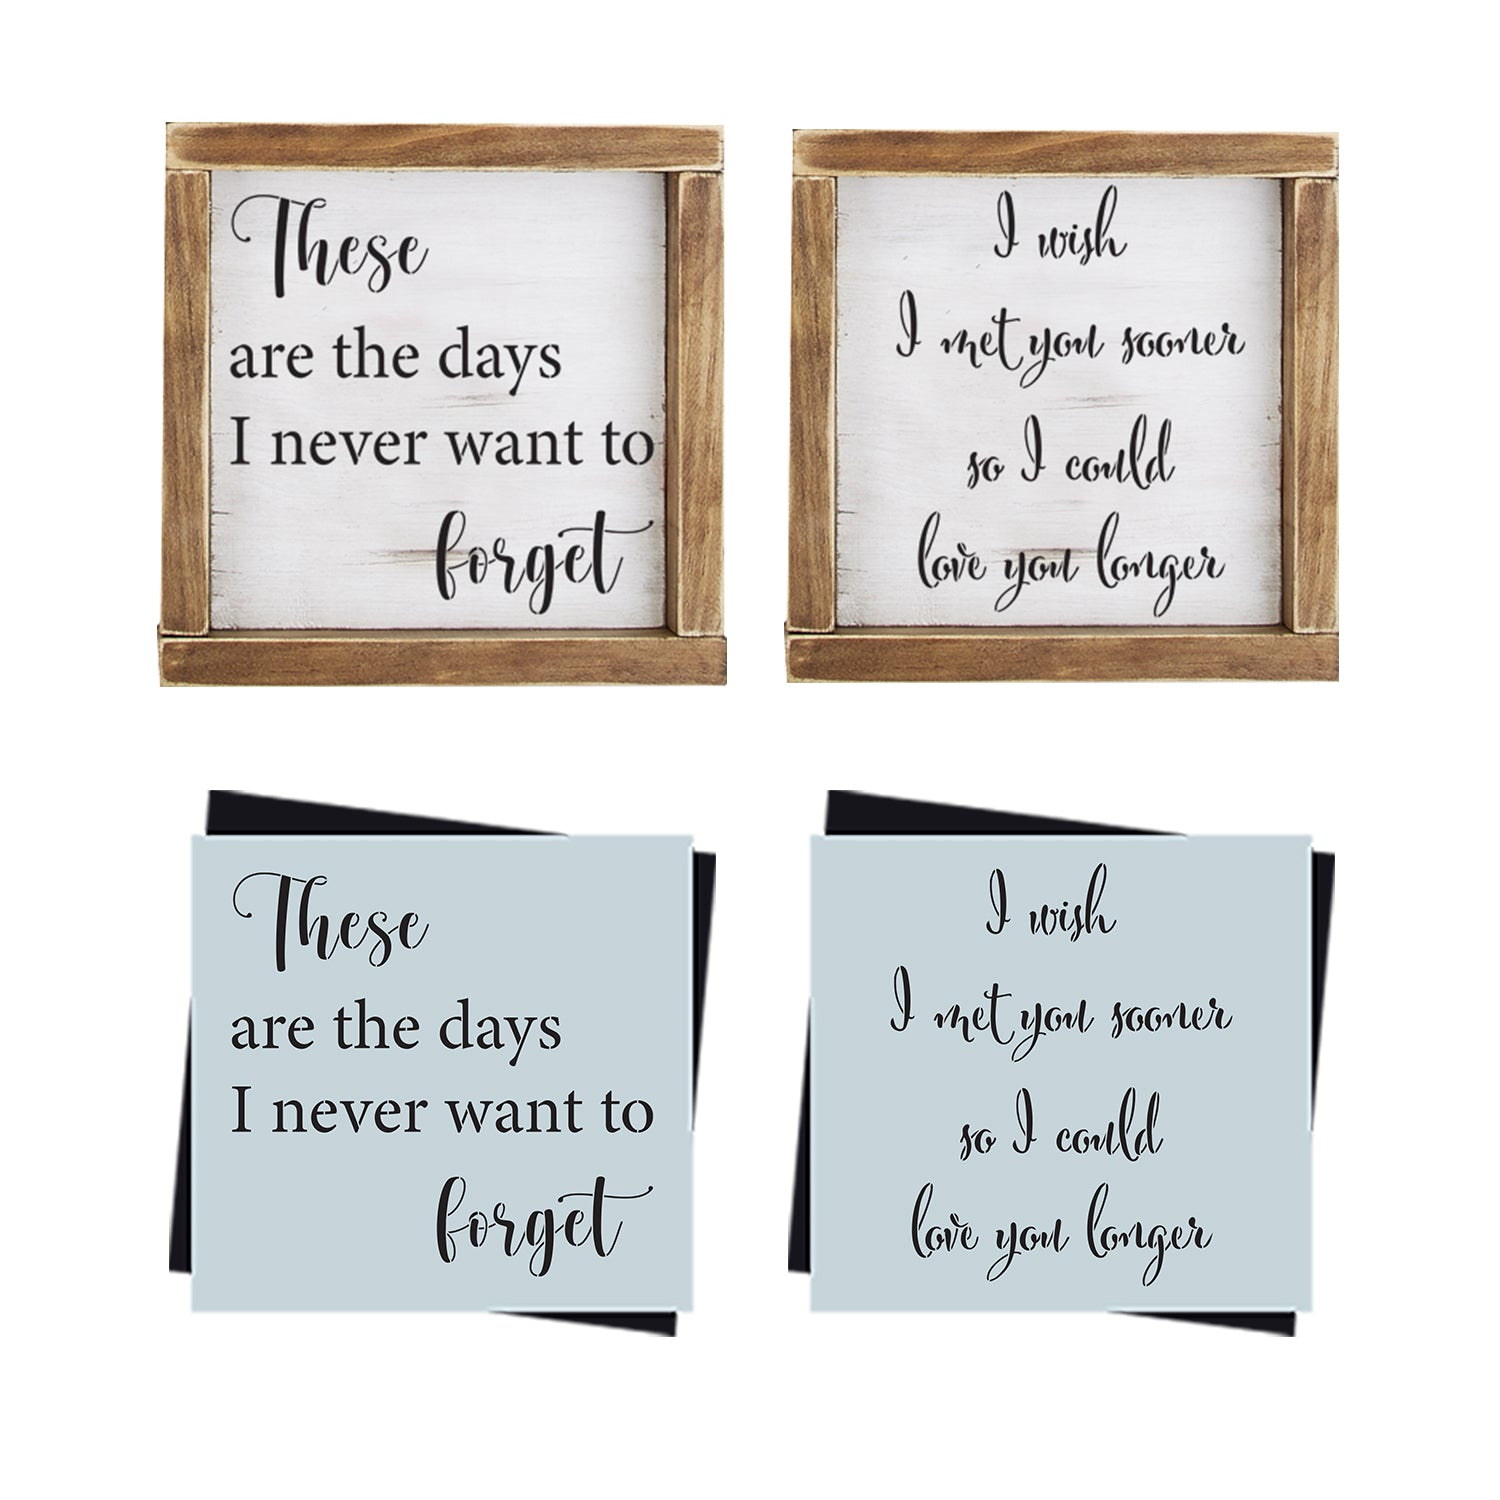 DIY reusable farmhouse signs stencils,  diy rustic home decor stencils, These are the days I never wants to forget sign stencils, i wish i met you sooner so i could love you longer sign stencil, diy love signs, diy family home decor sign stencils